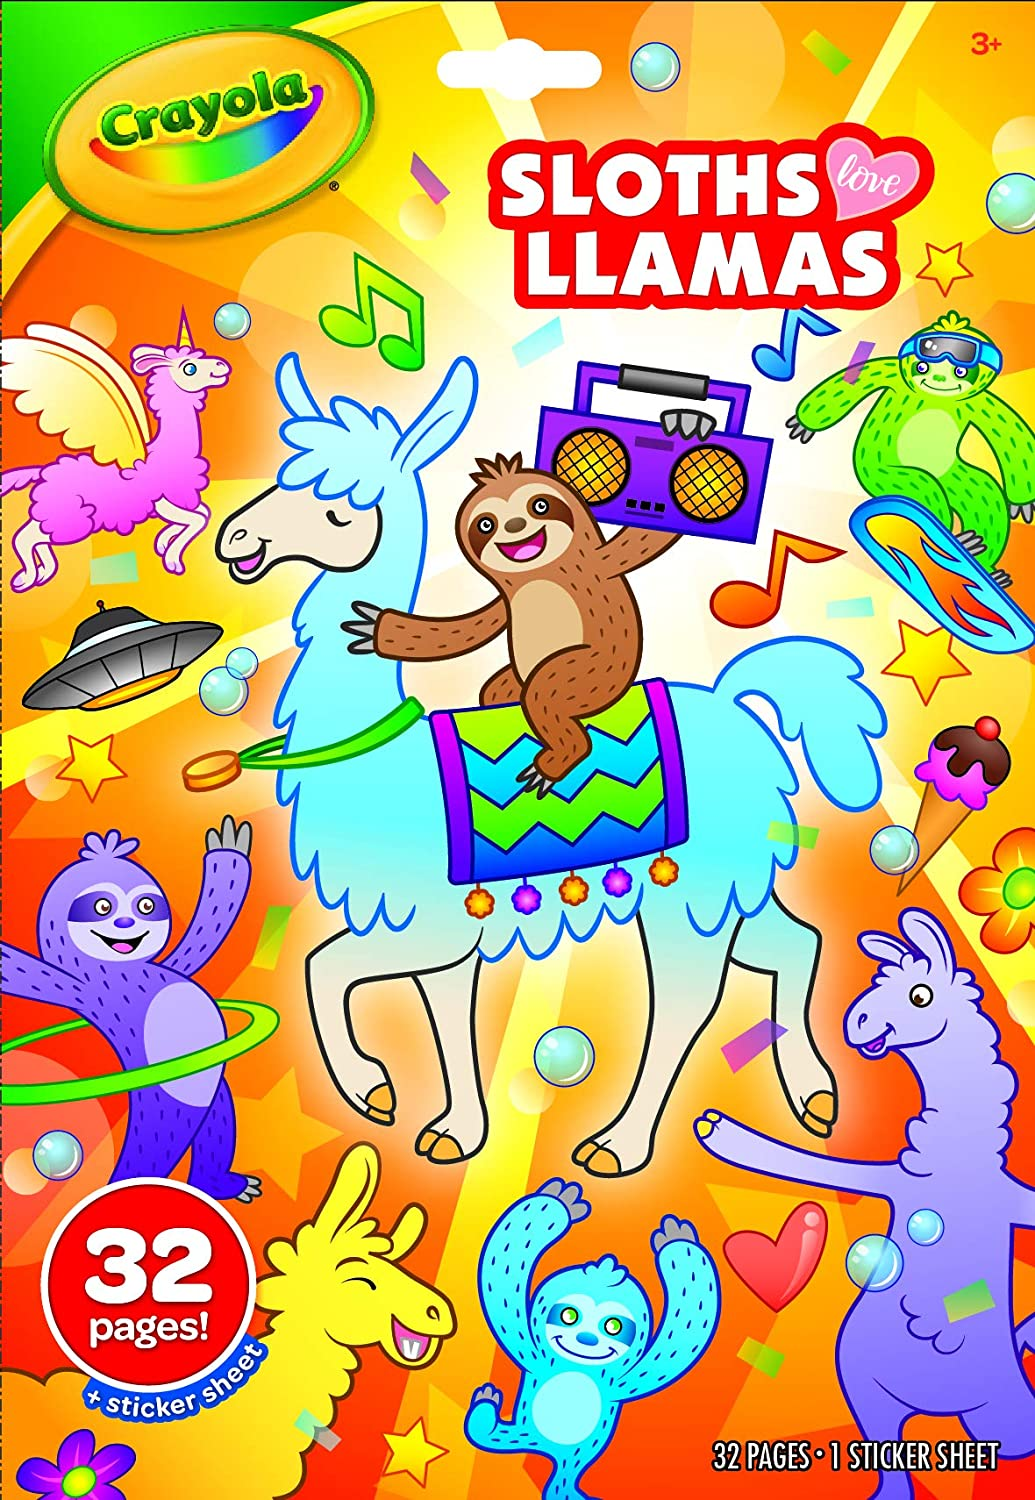 Crayola Don't miss the campaign Sloths Love Sale Special Price Colouring Book Llamas